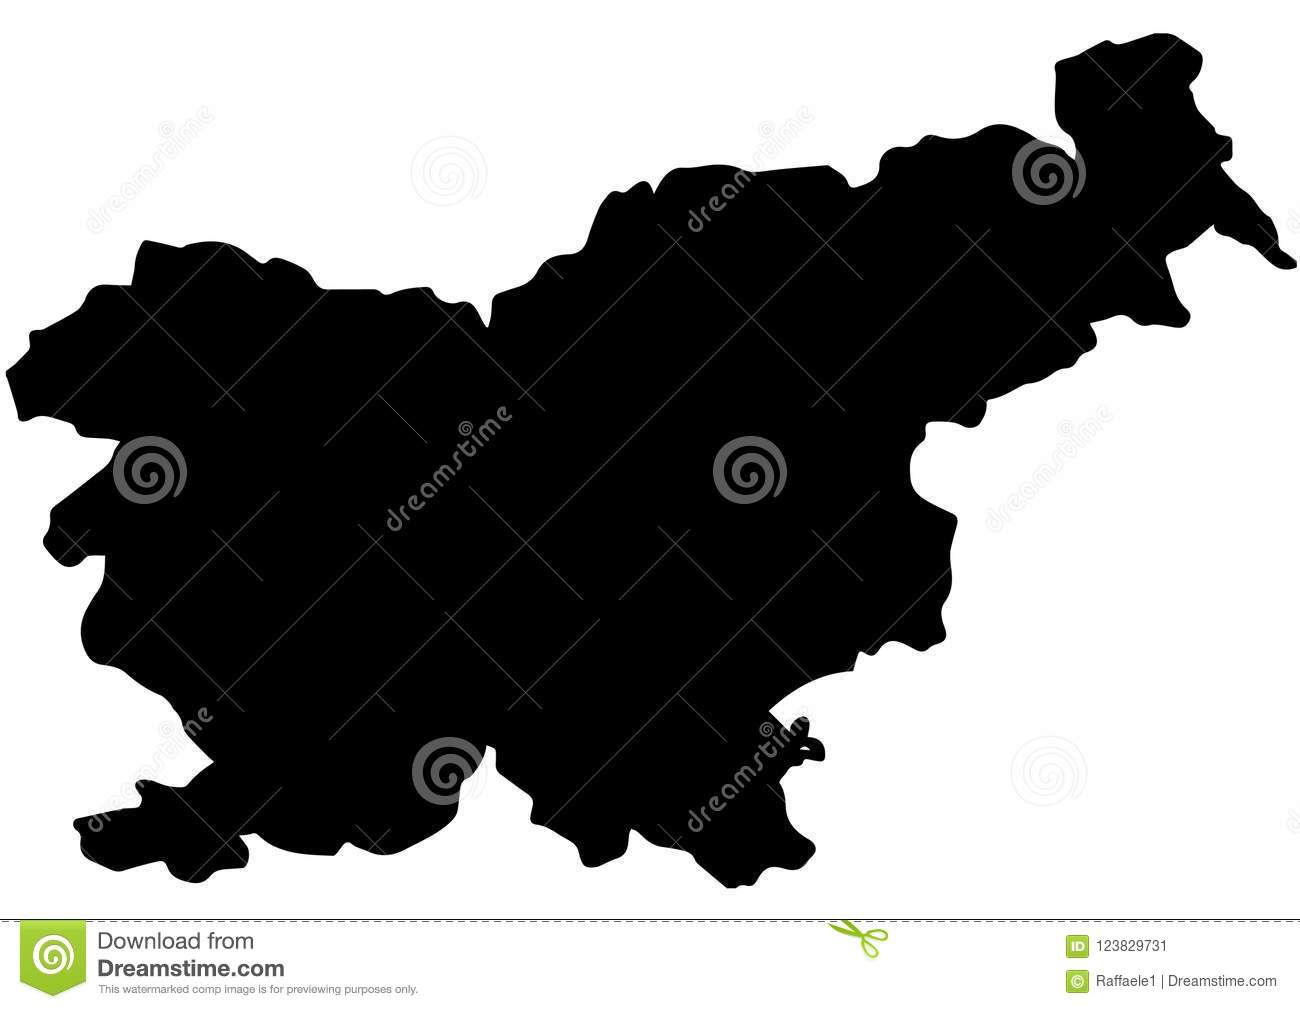 Slovenia State Map Vector Silhouette Stock Vector - Illustration of ...